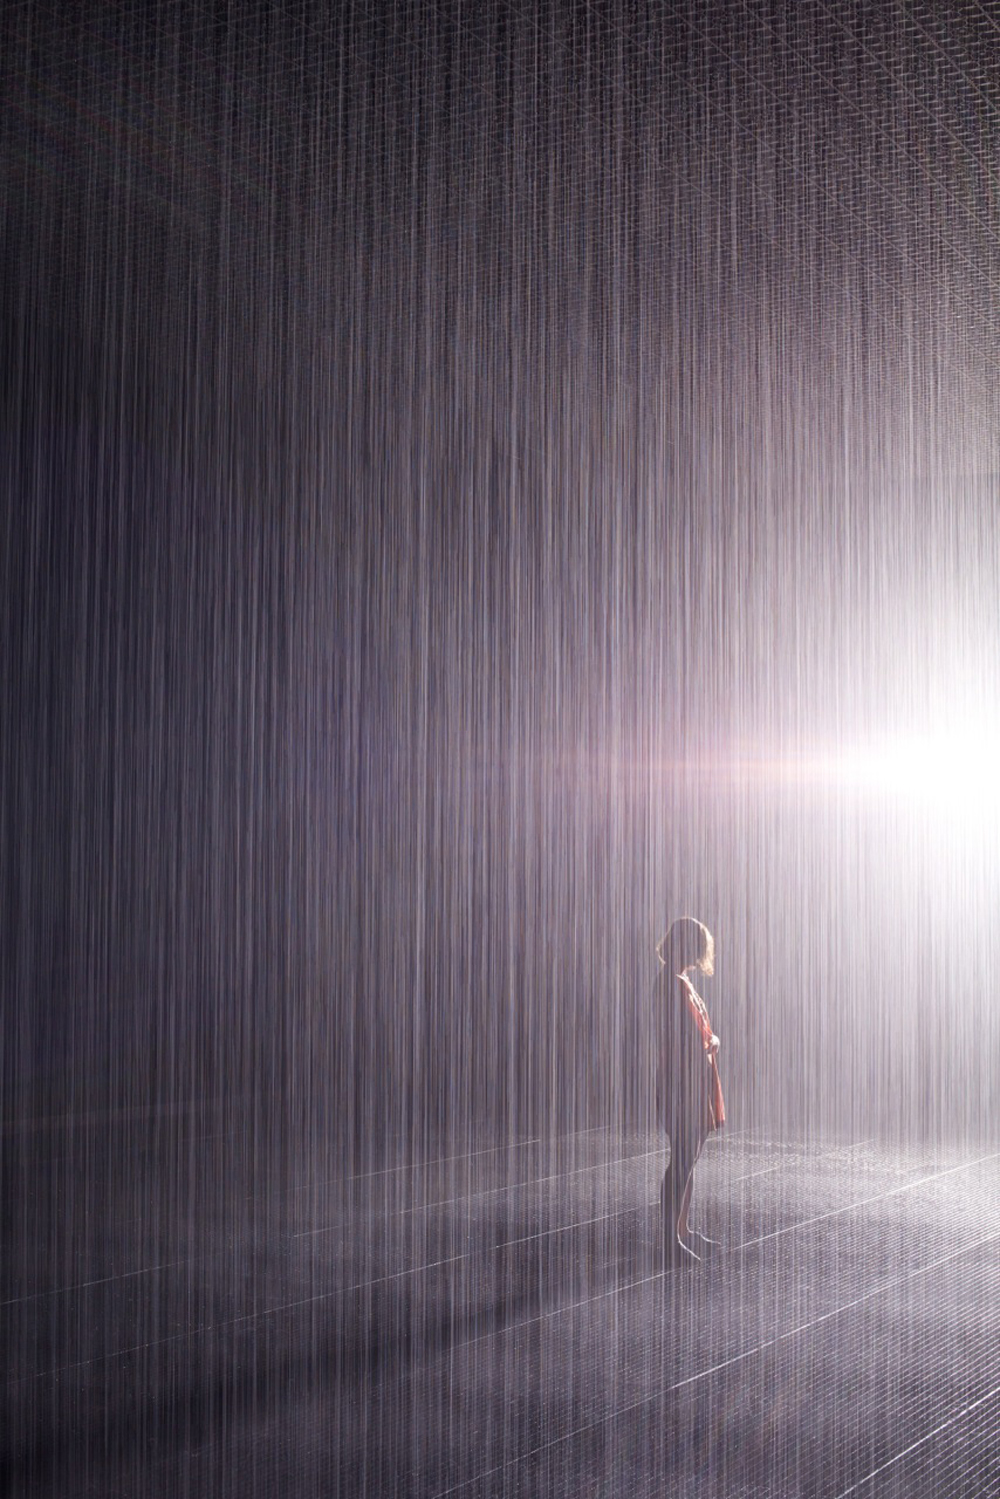 Rain Room at MoMA New York 2013. Foto: Random International